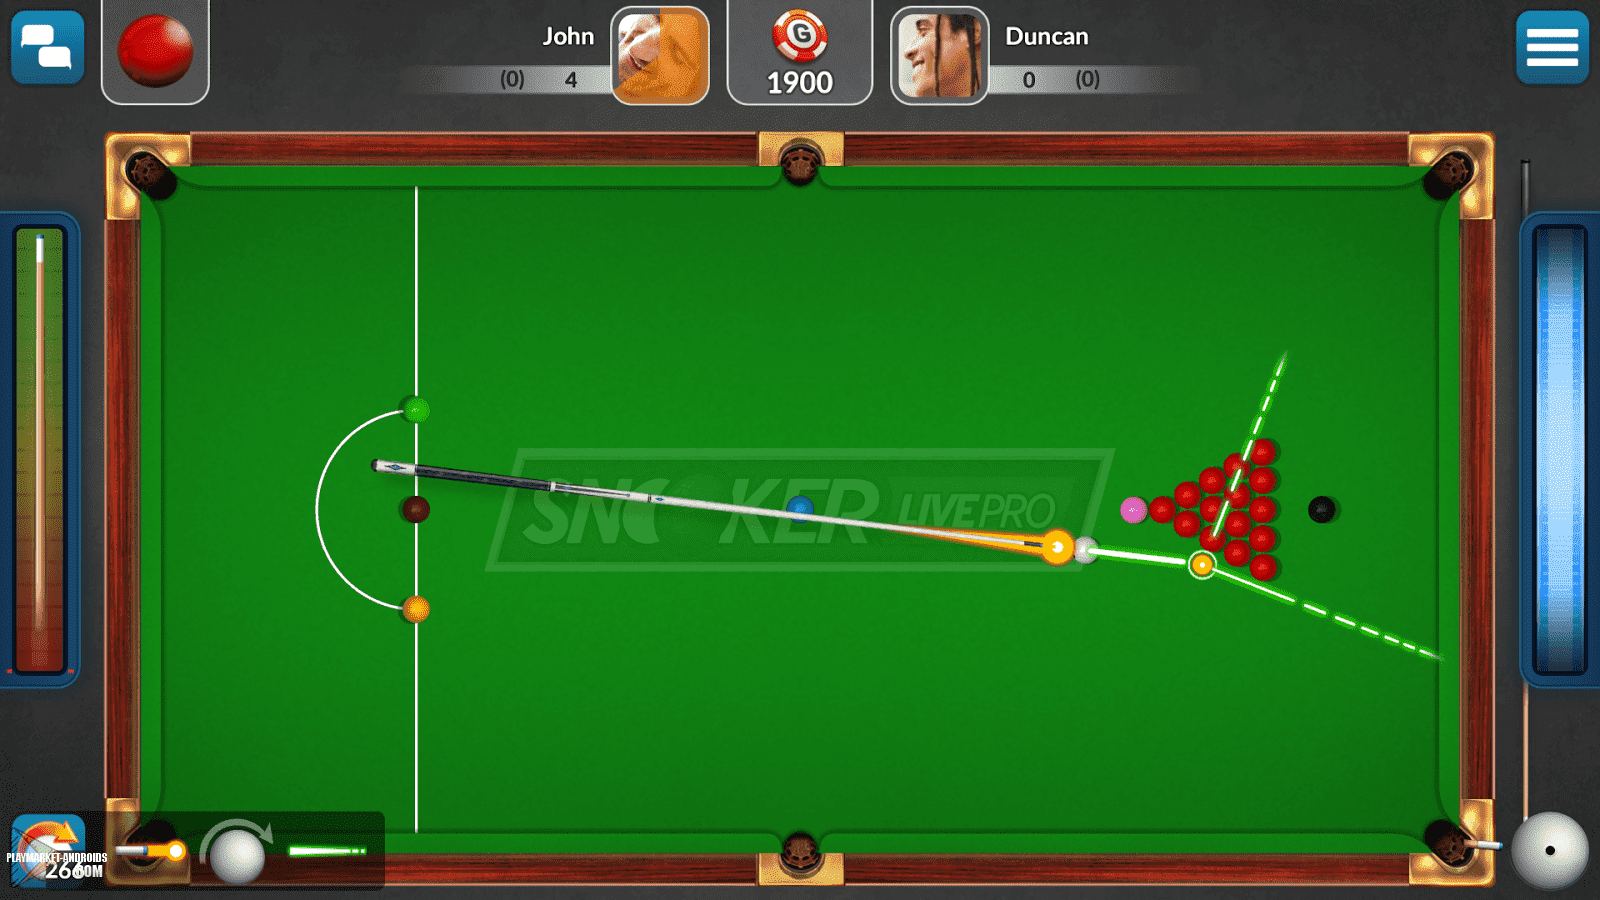 snooker.org live